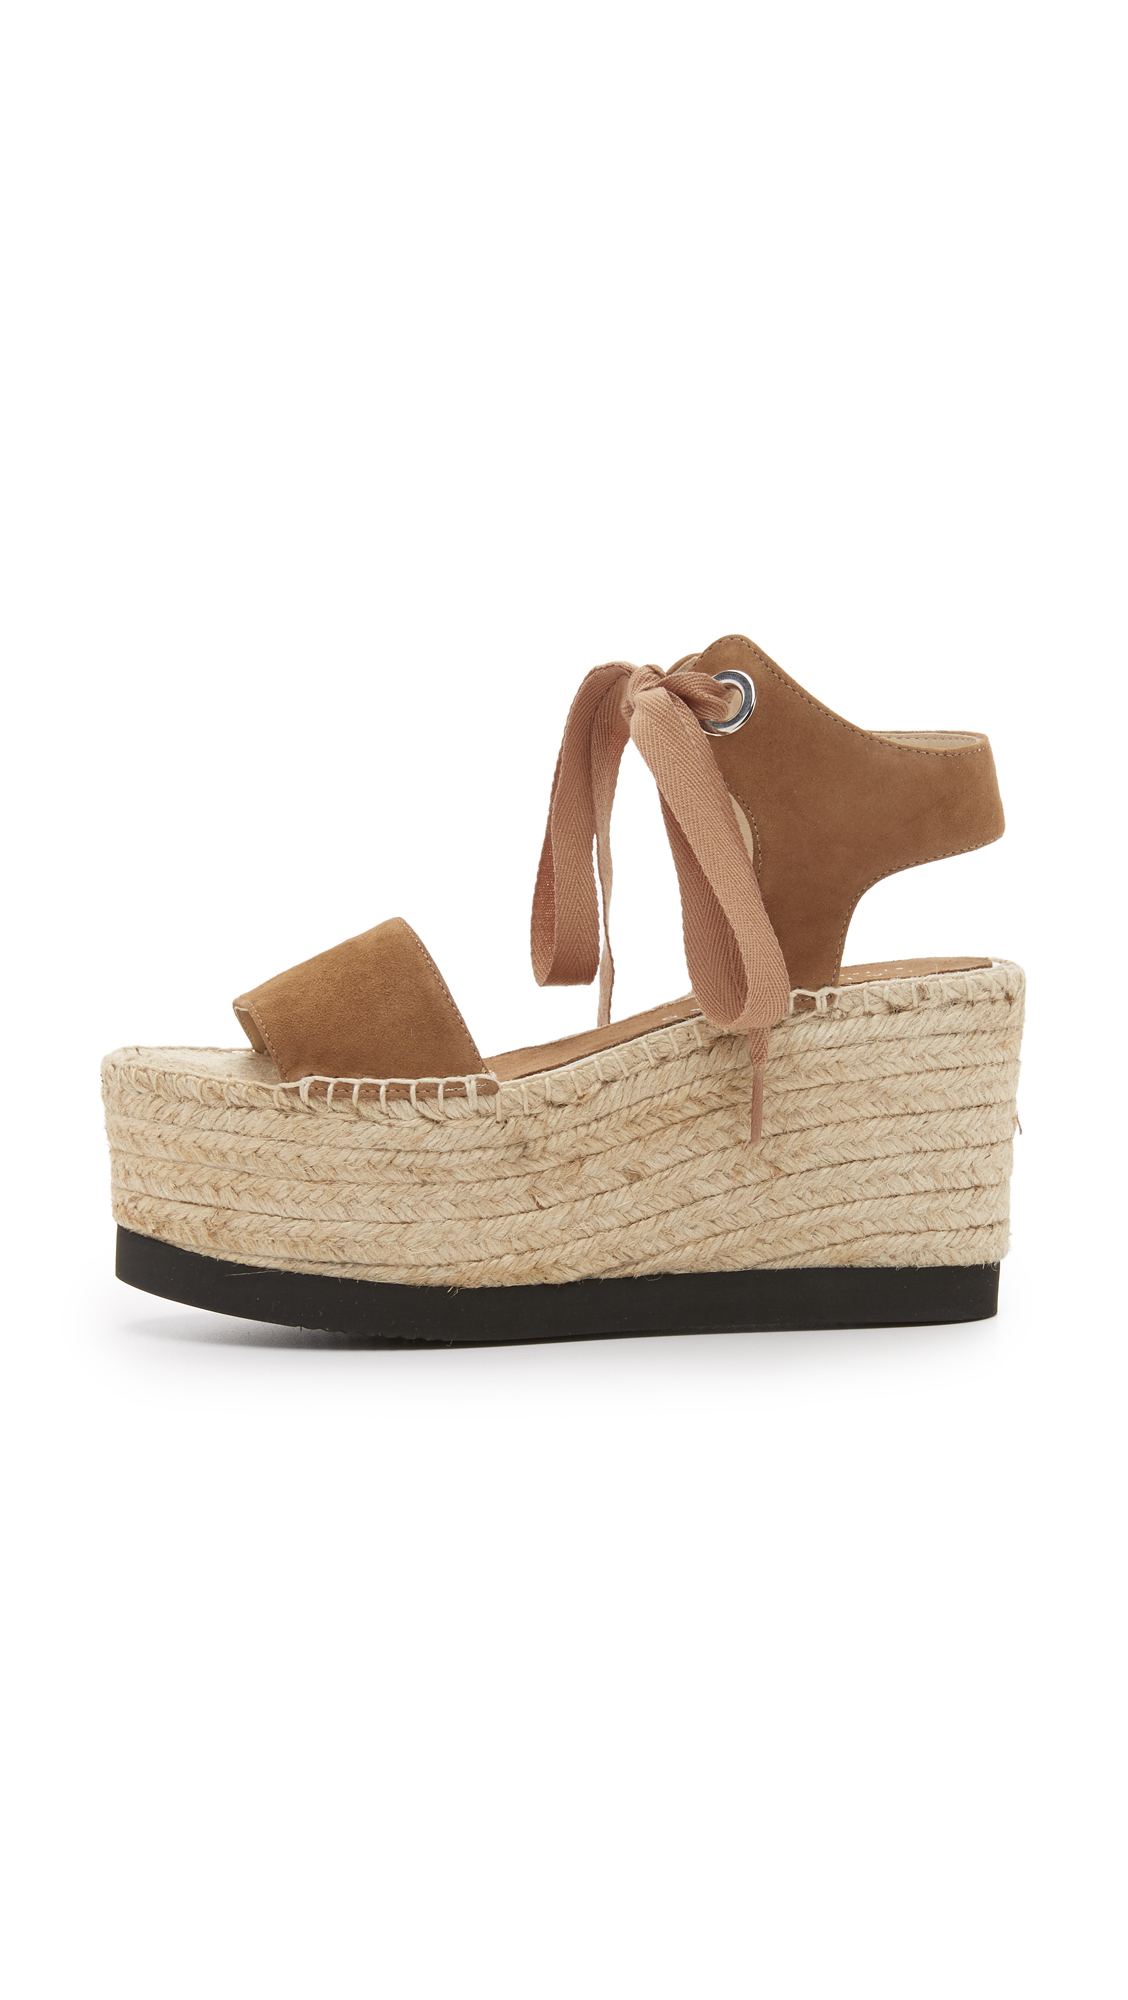 Free Shipping Good Selling Free Shipping Top Quality FOOTWEAR - Espadrilles Paloma Barcel Cheap Sale Get Authentic For Sale Online Store 0NhLVDB24